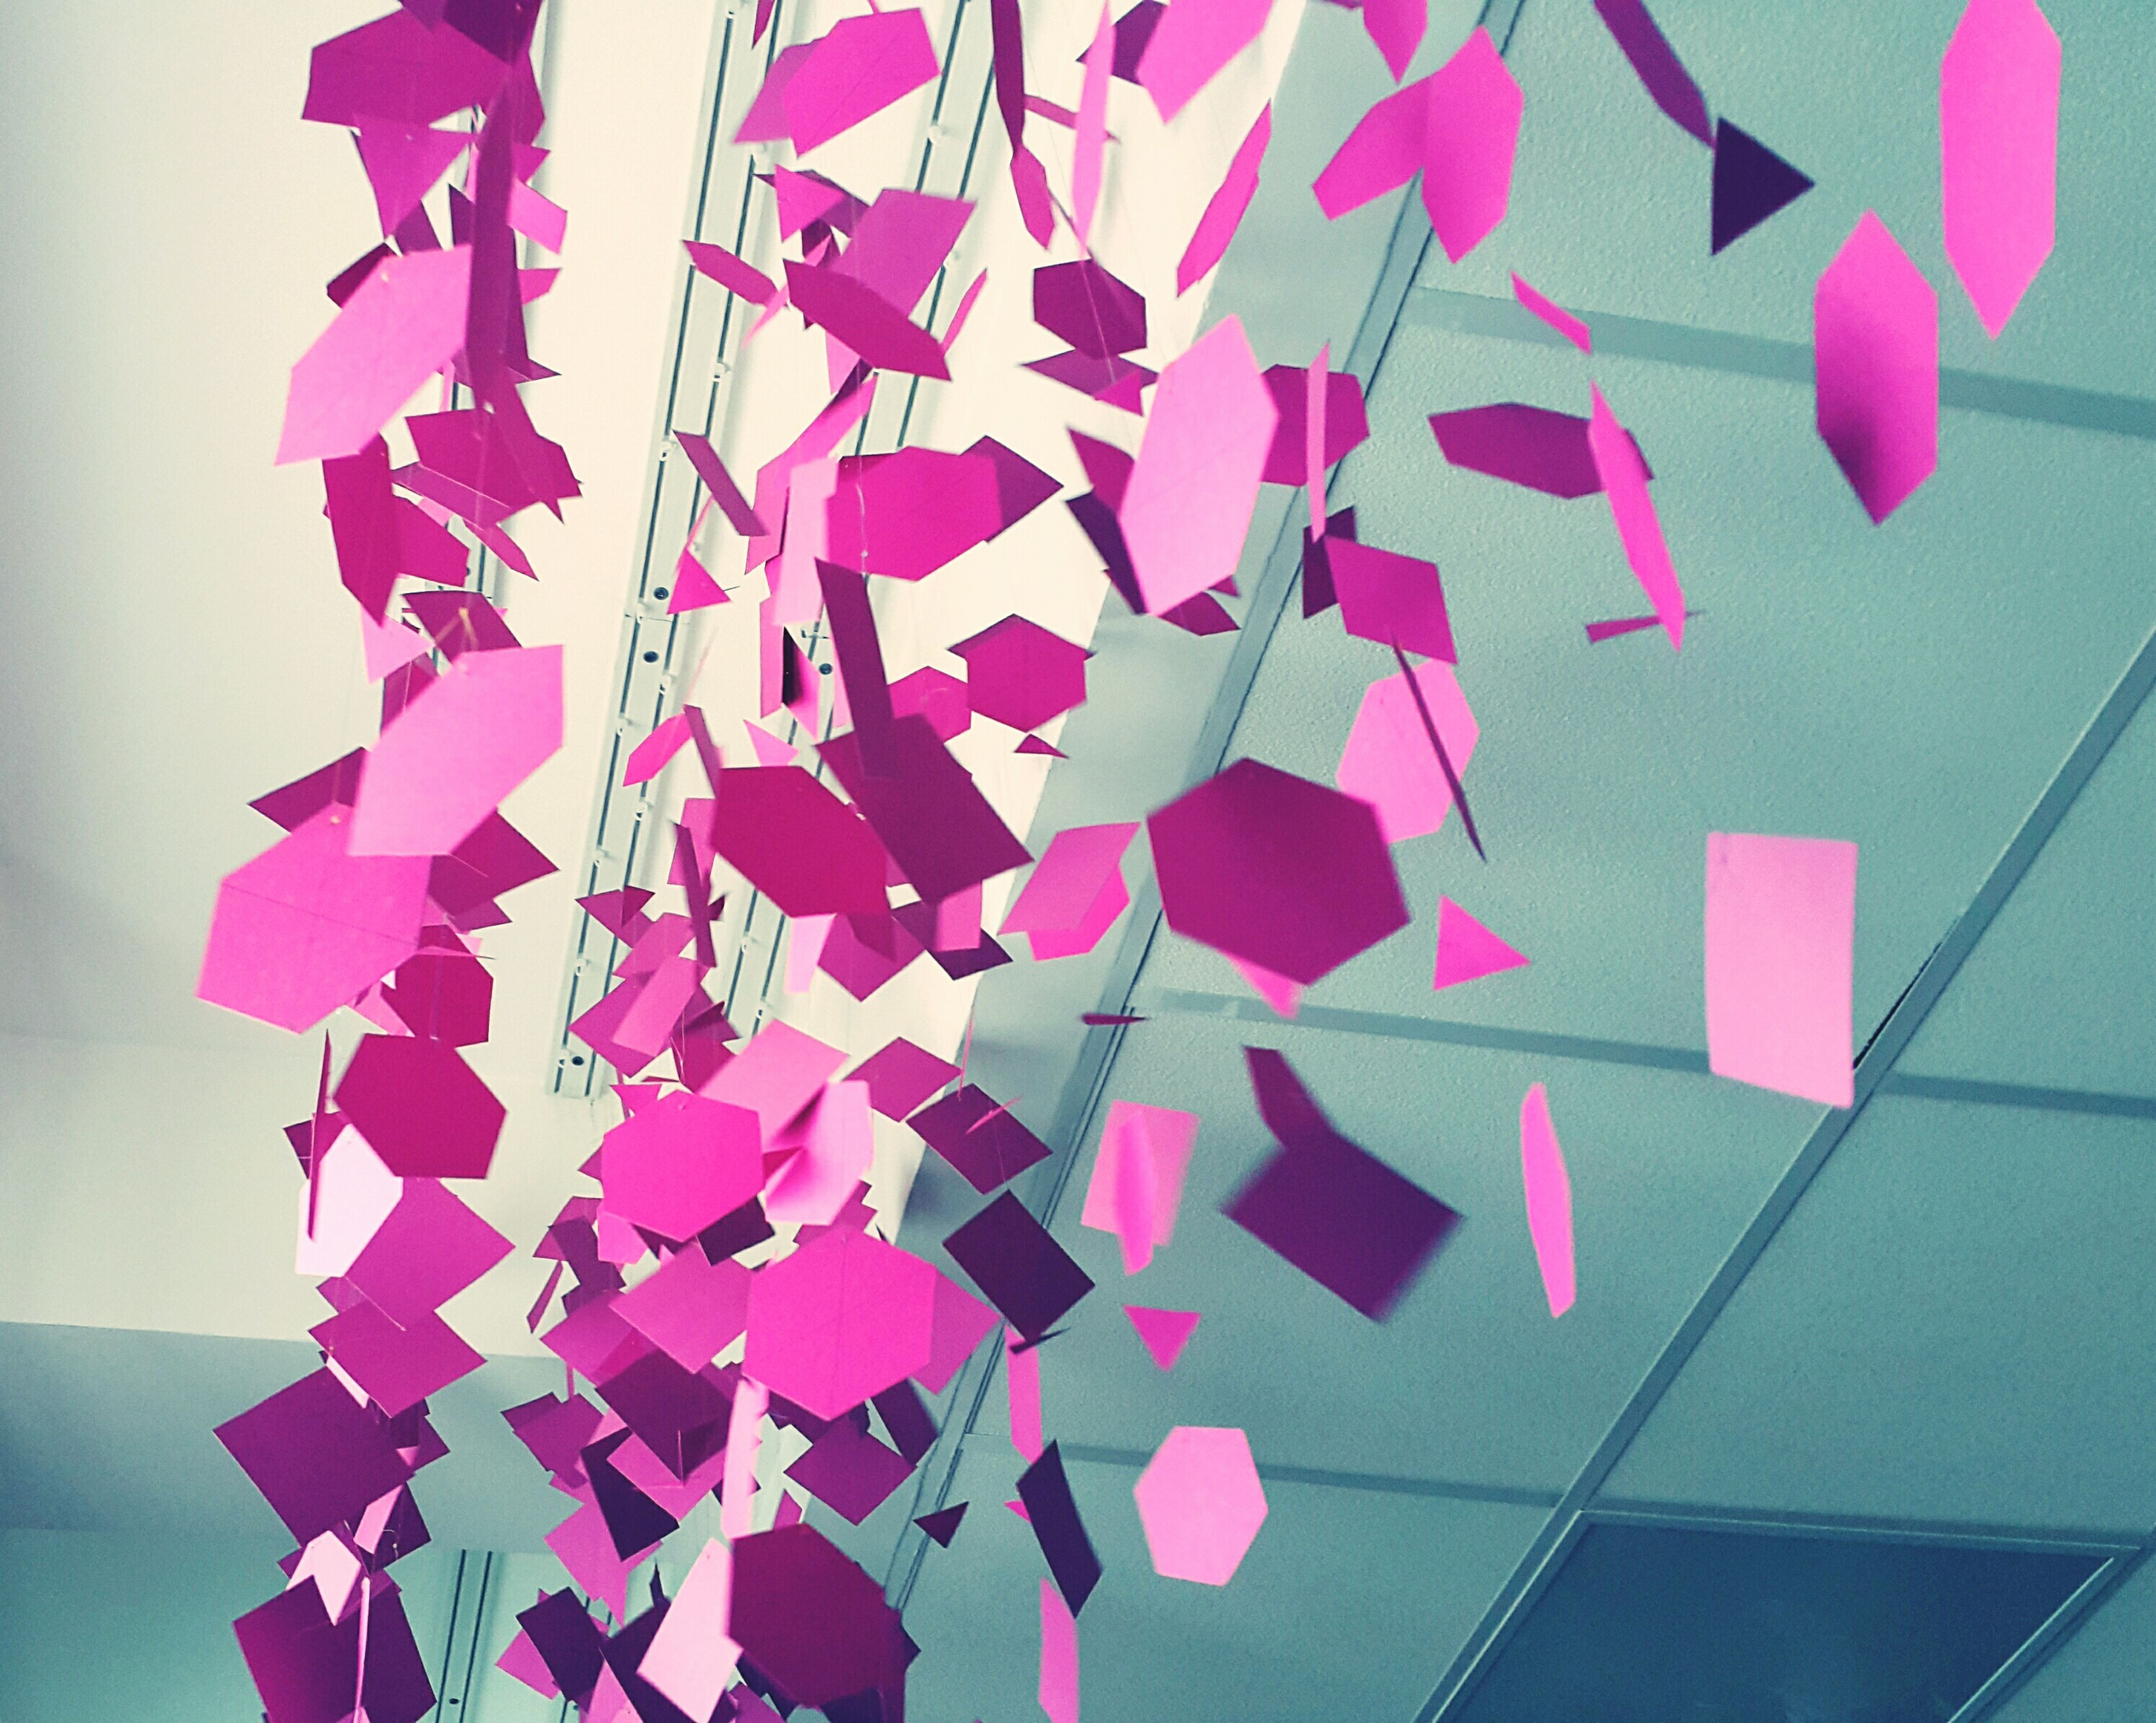 indoors, hanging, decoration, multi colored, variation, art and craft, still life, low angle view, paper, wall - building feature, celebration, creativity, no people, close-up, pattern, art, red, pink color, in a row, colorful